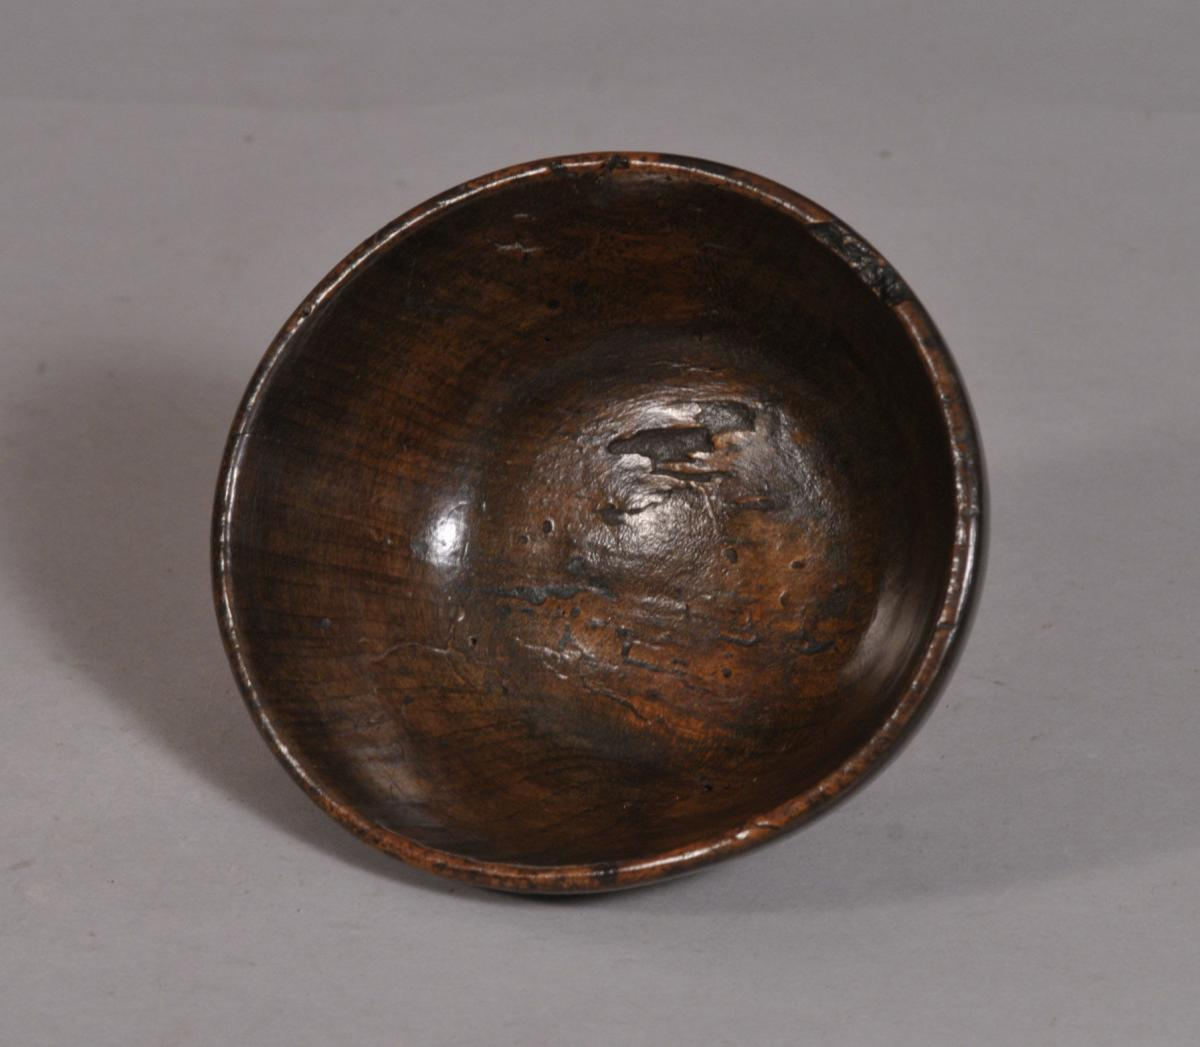 S/3467 Antique Treen 18th Century Fruitwood Butter Cup